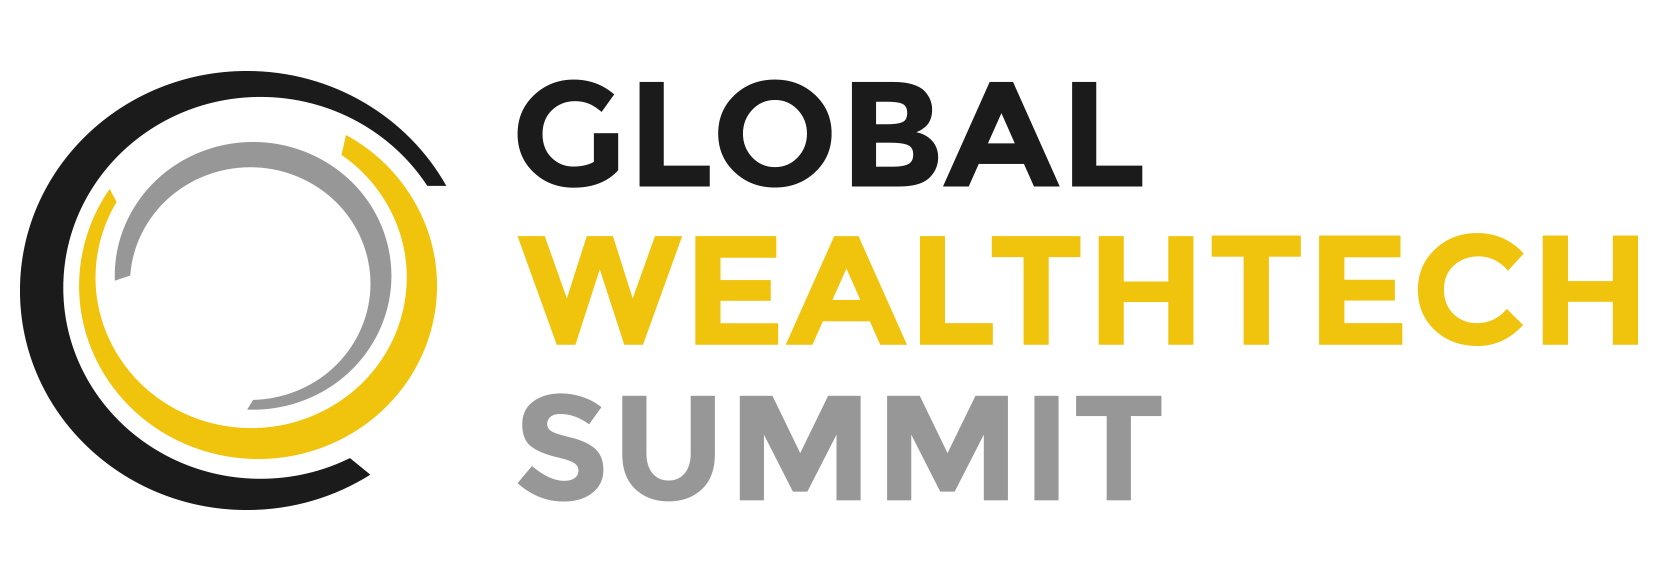 Global_Wealth_Tech_Logo